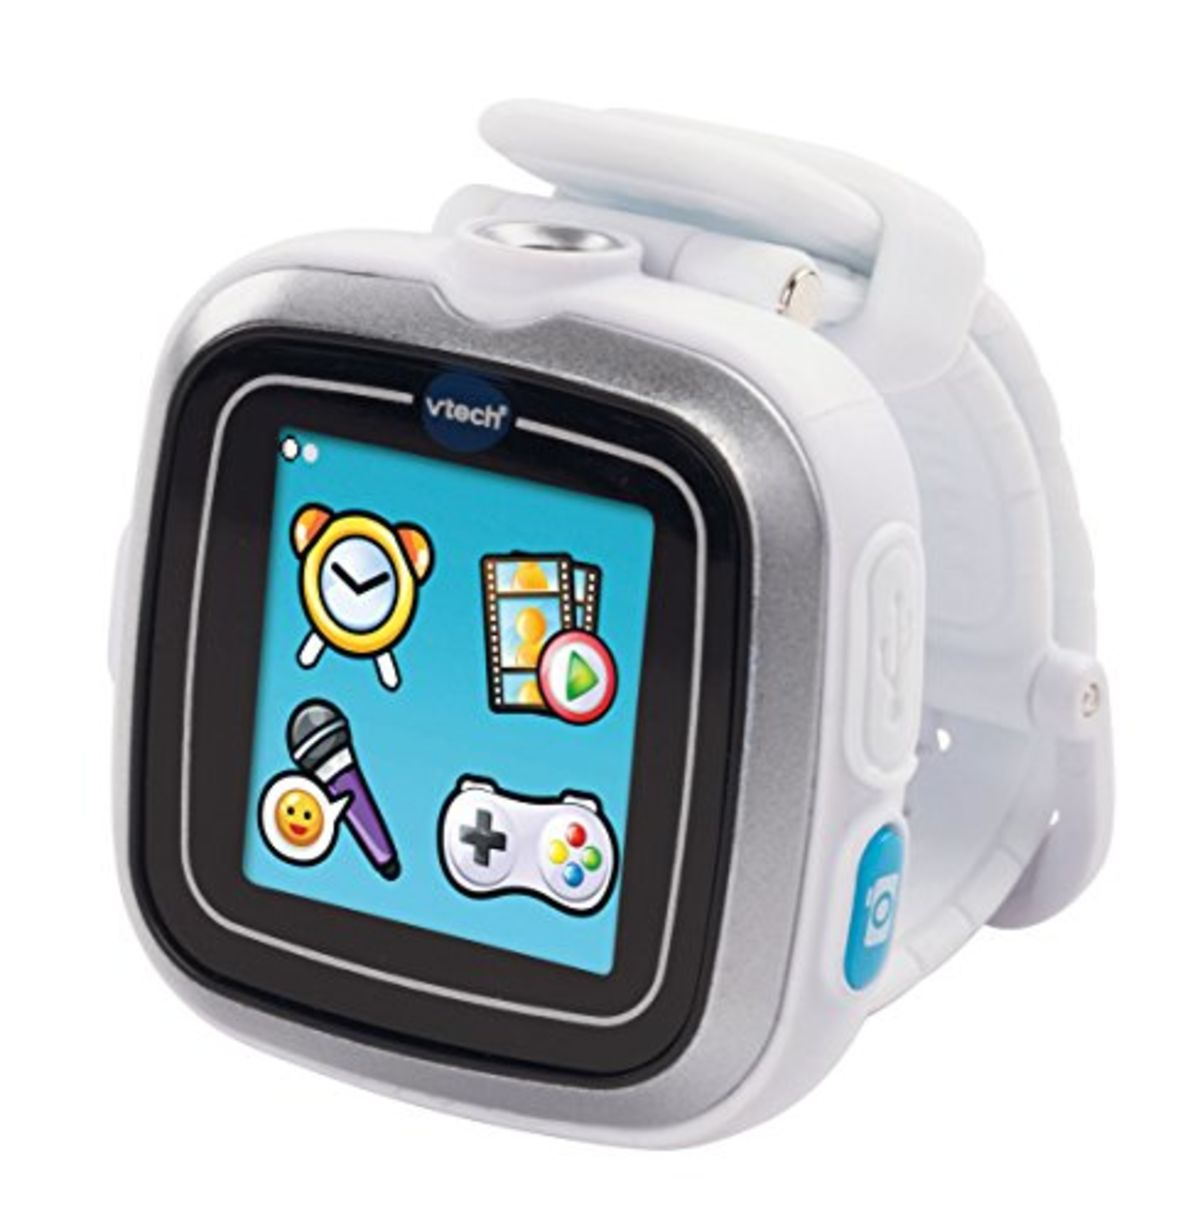 Best VTech Kidizoom Smartwatch White Reviews 2014